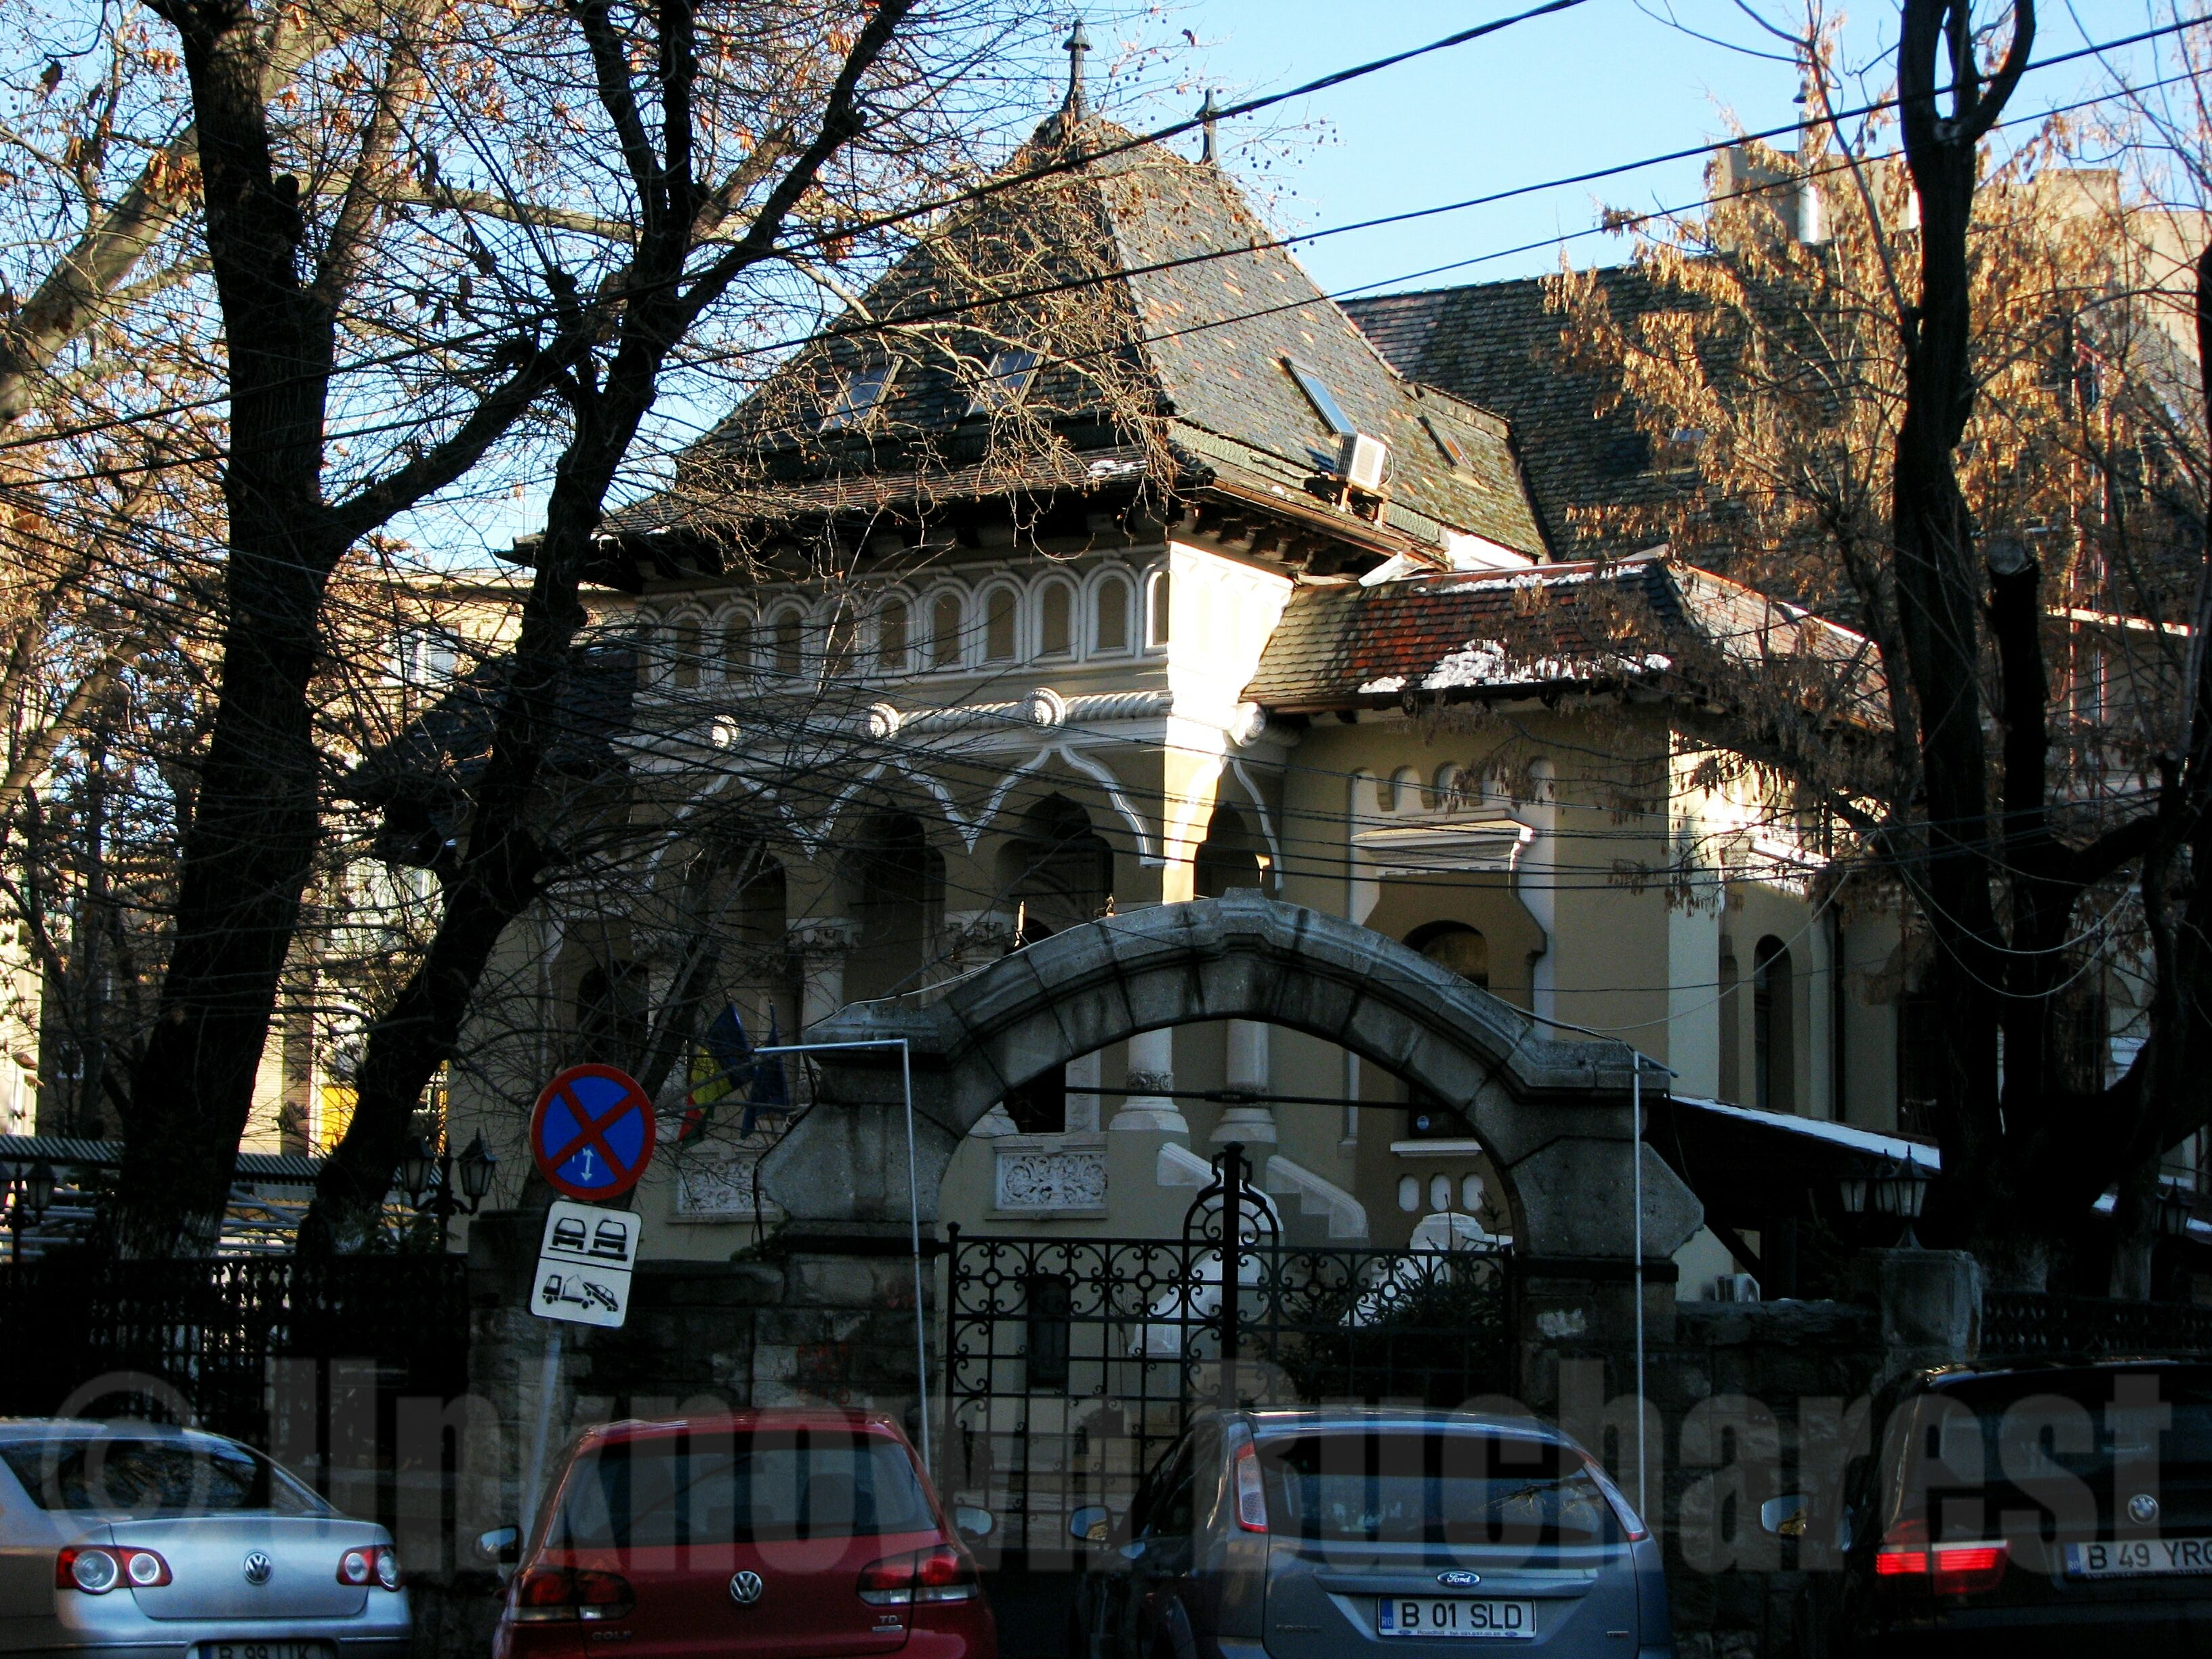 Oprea soare house 1910 architect petre antonescu bucharest bucharest romania private - Neo romanian architecture traditional and functional house plans ...